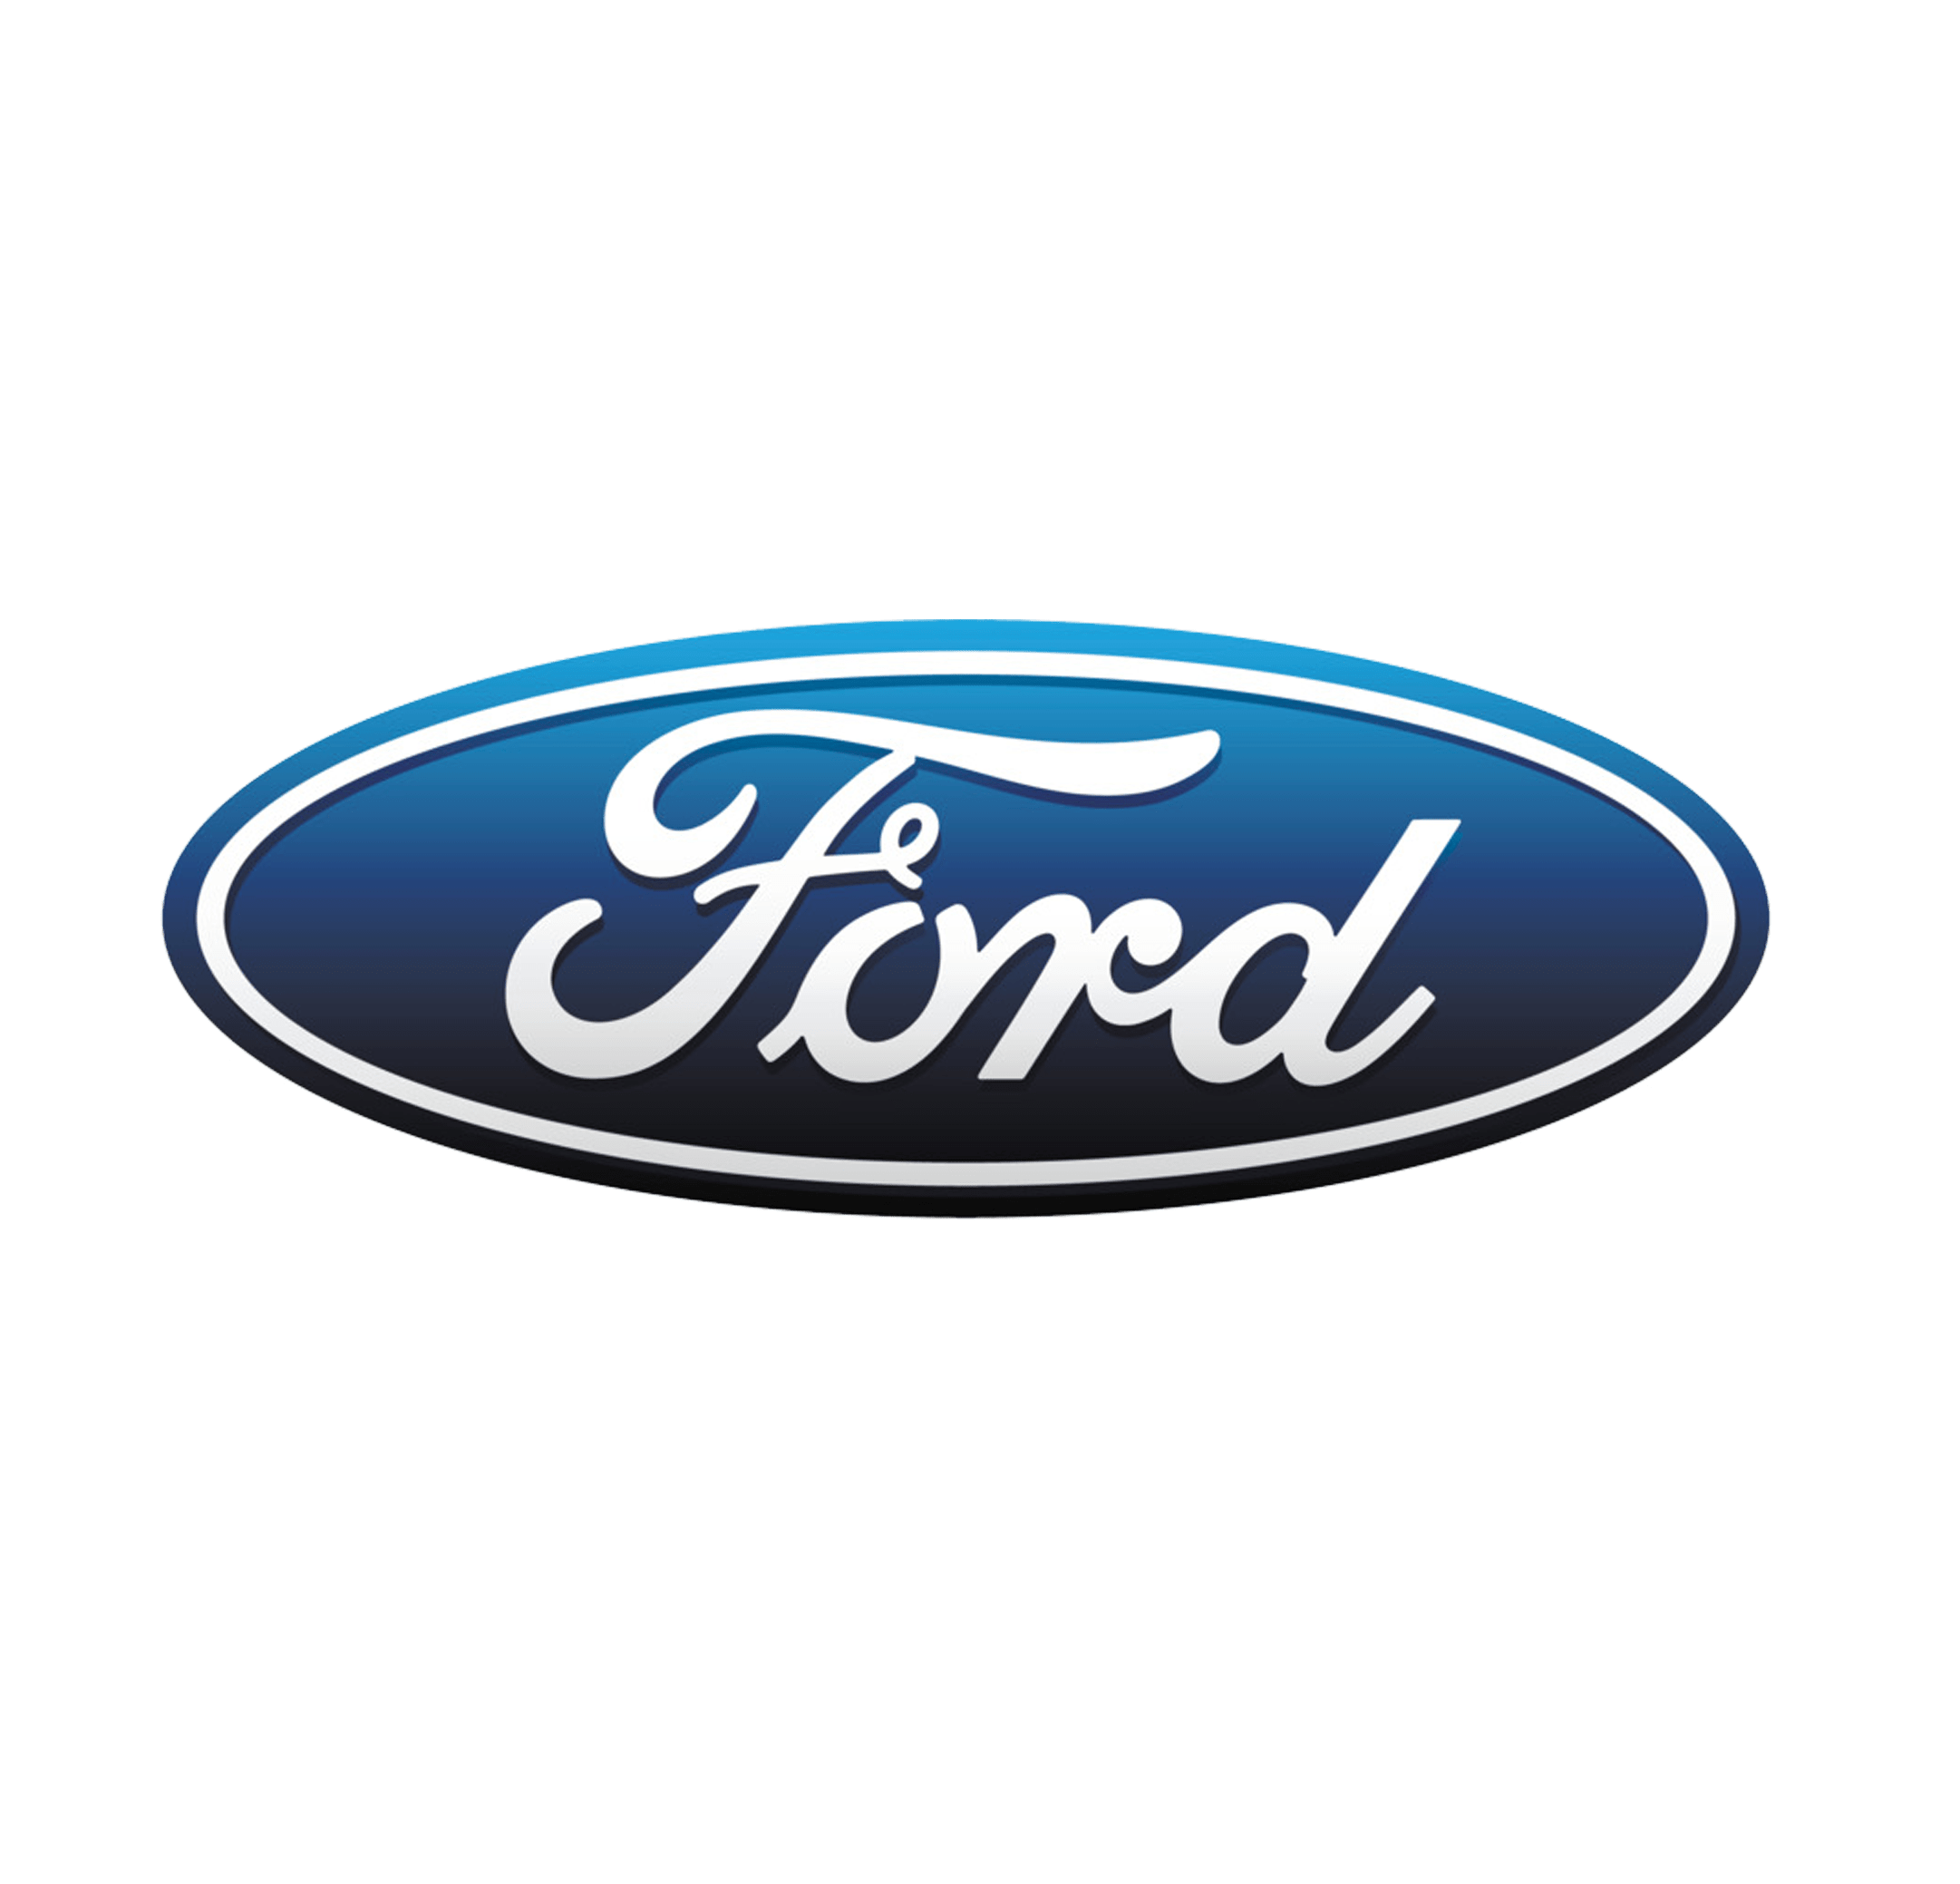 FORD-min-1.png